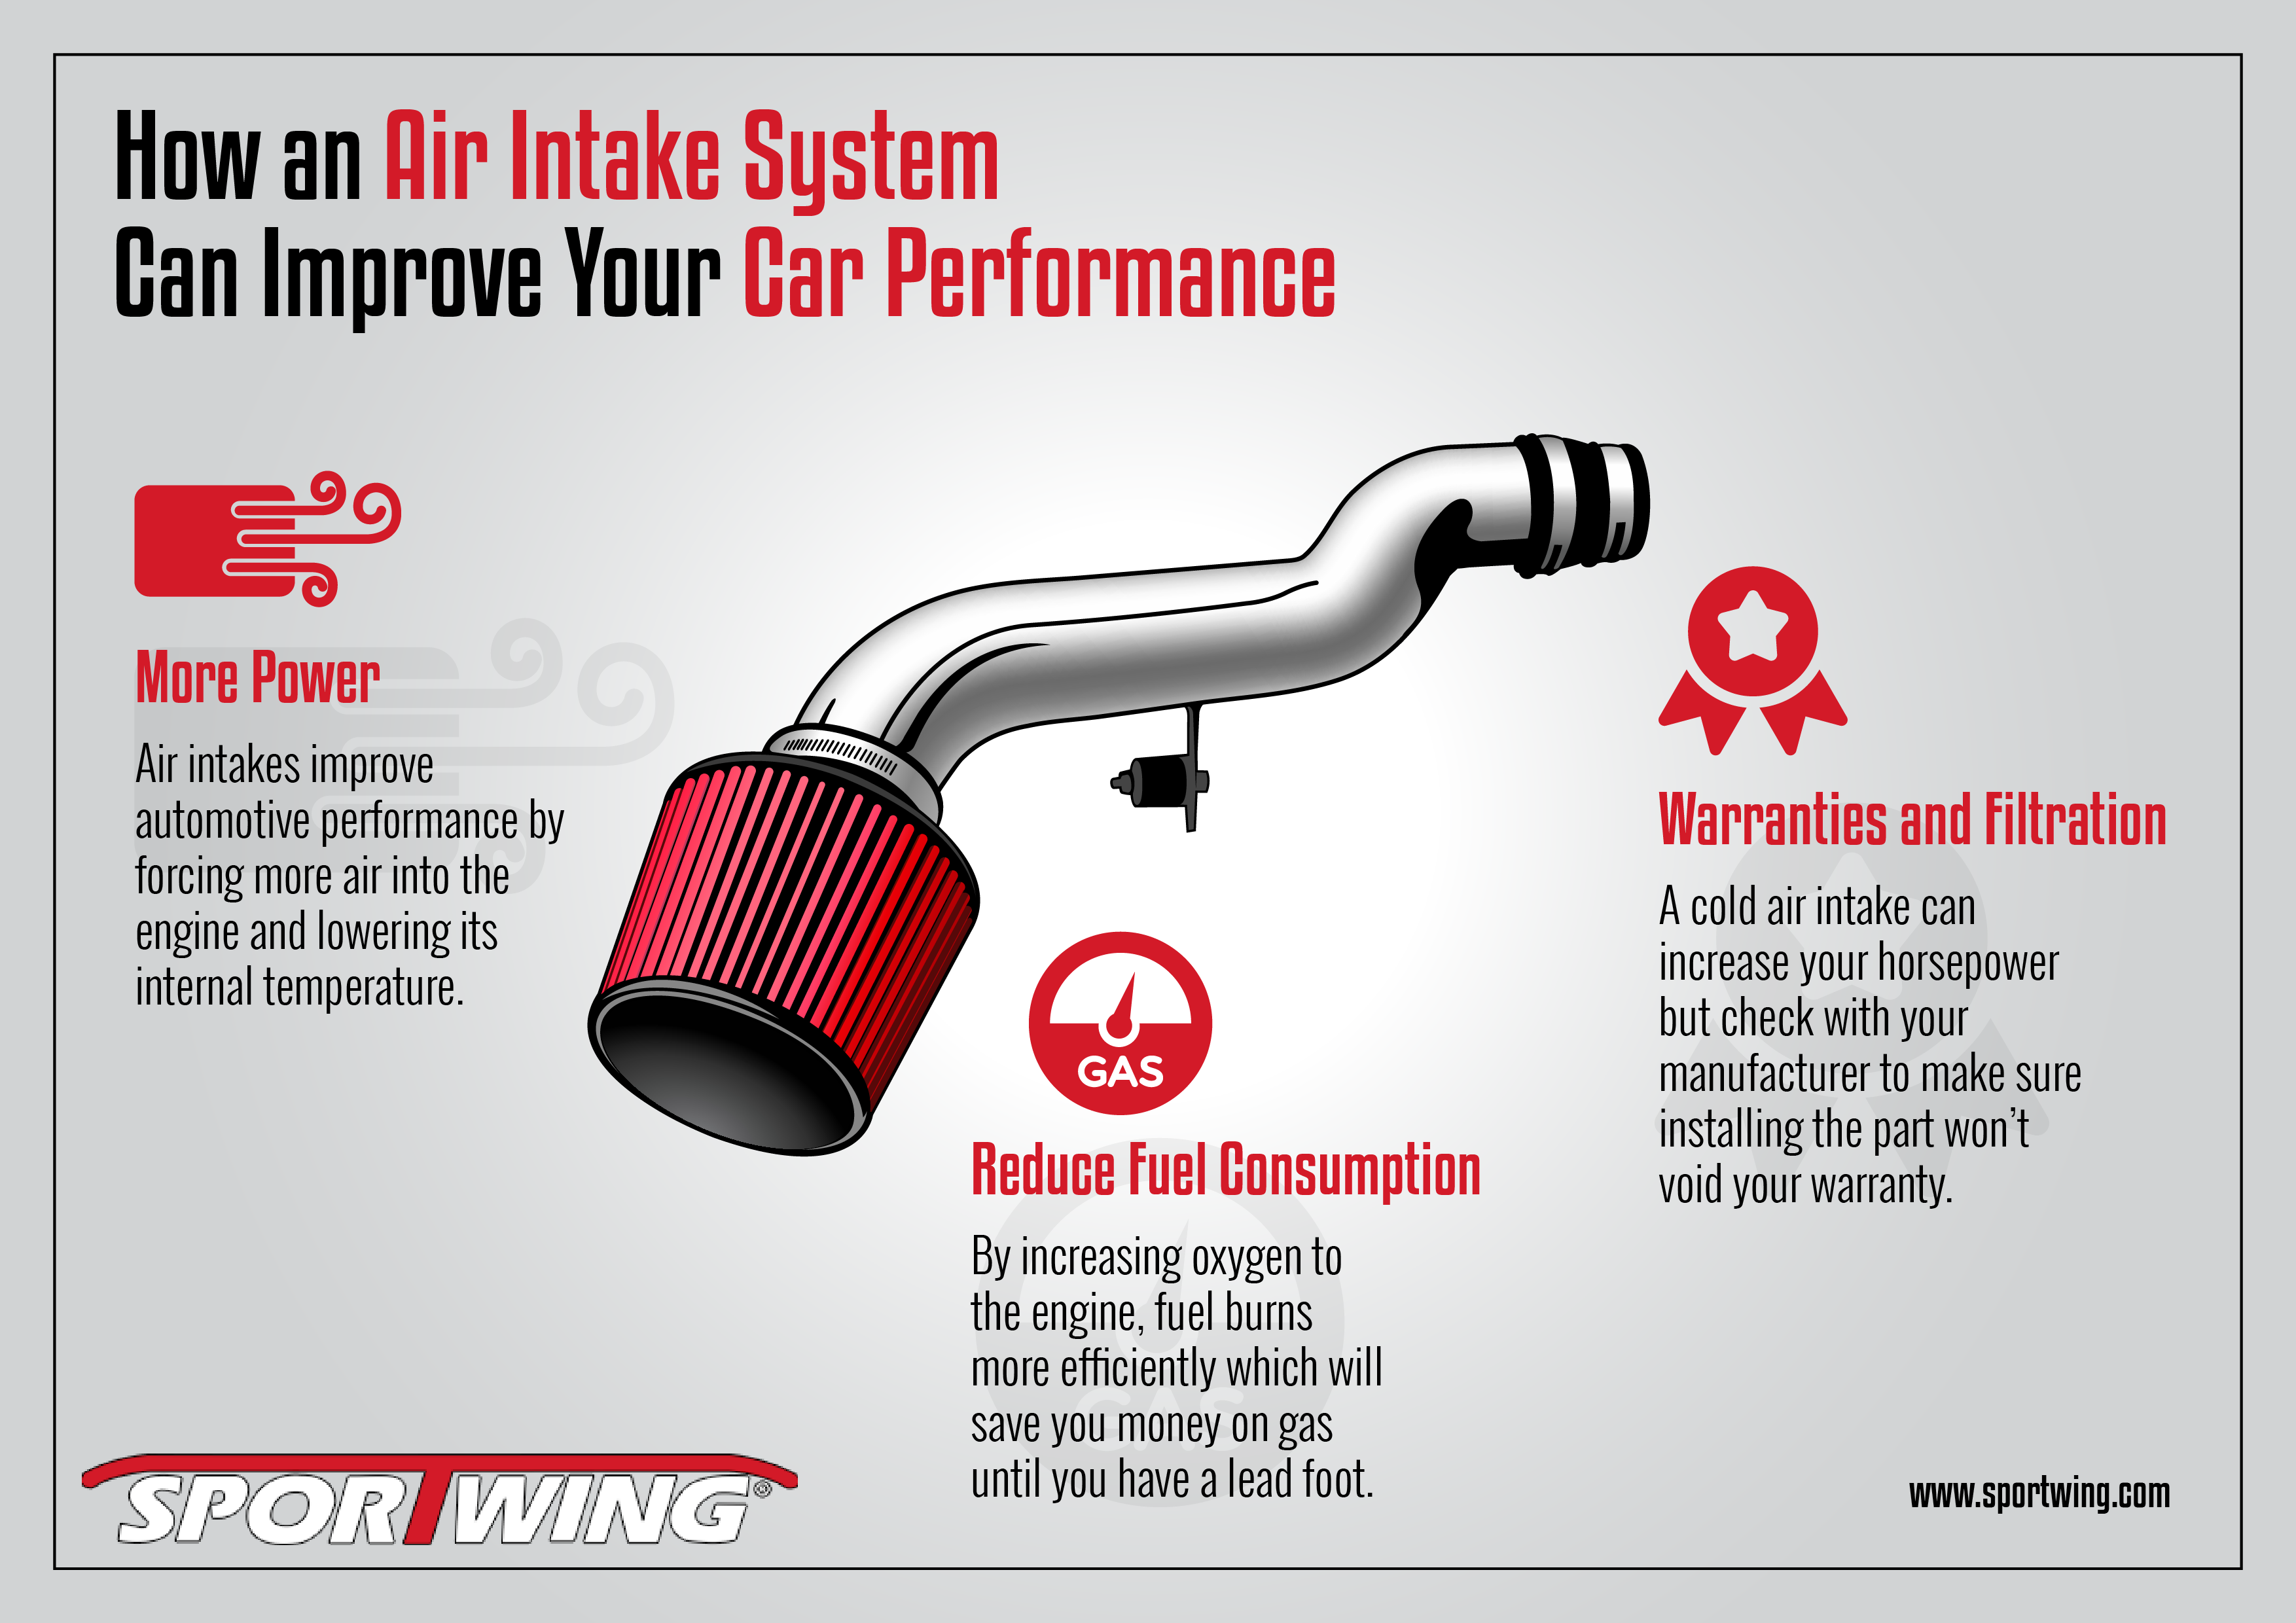 How An Air Intake System Can Improve Performance Infographic